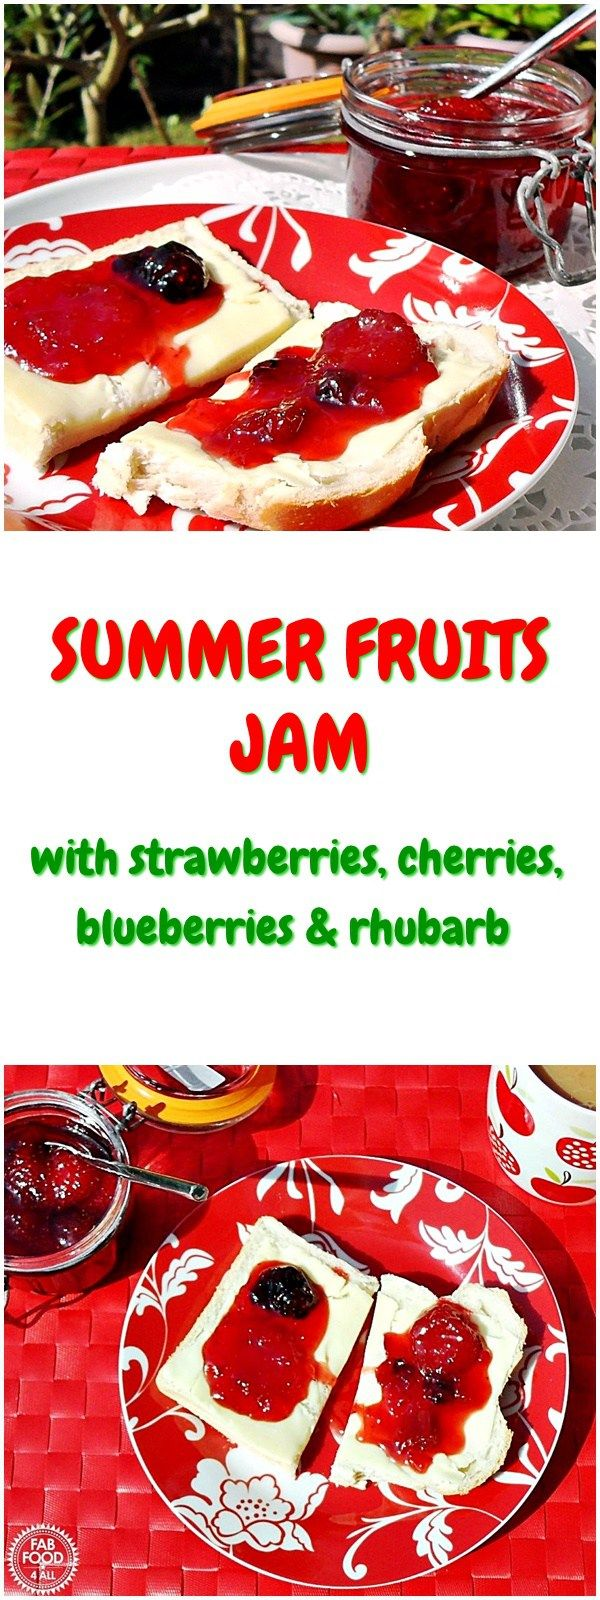 Summer Fruits Jam, divinely delicious! Fab Food 4 All